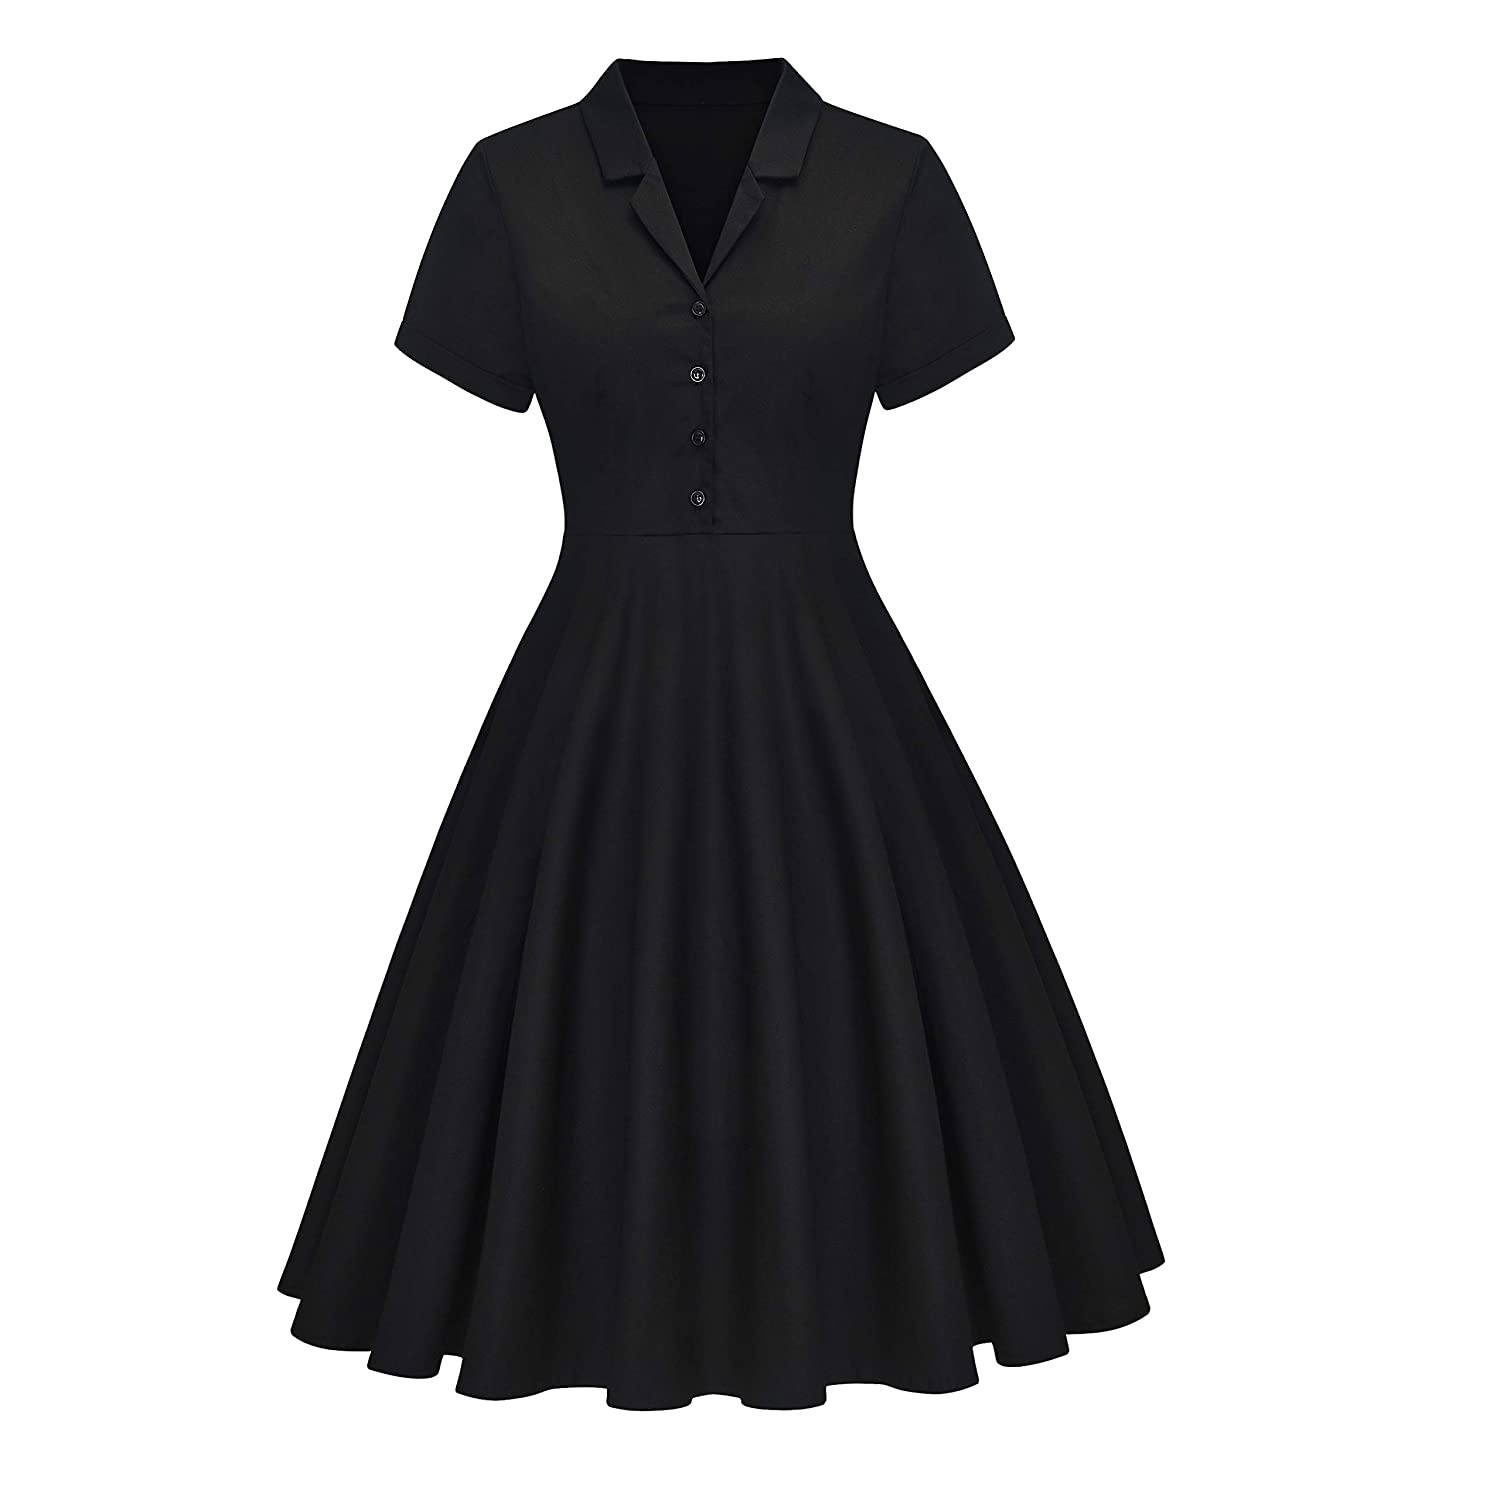 1940s Dresses | 40s Dress, Swing Dress Yarn & Ink Womens 1950s Vintage Dress Cocktail Party Dress with Short Sleeves with Two Pockets $39.99 AT vintagedancer.com